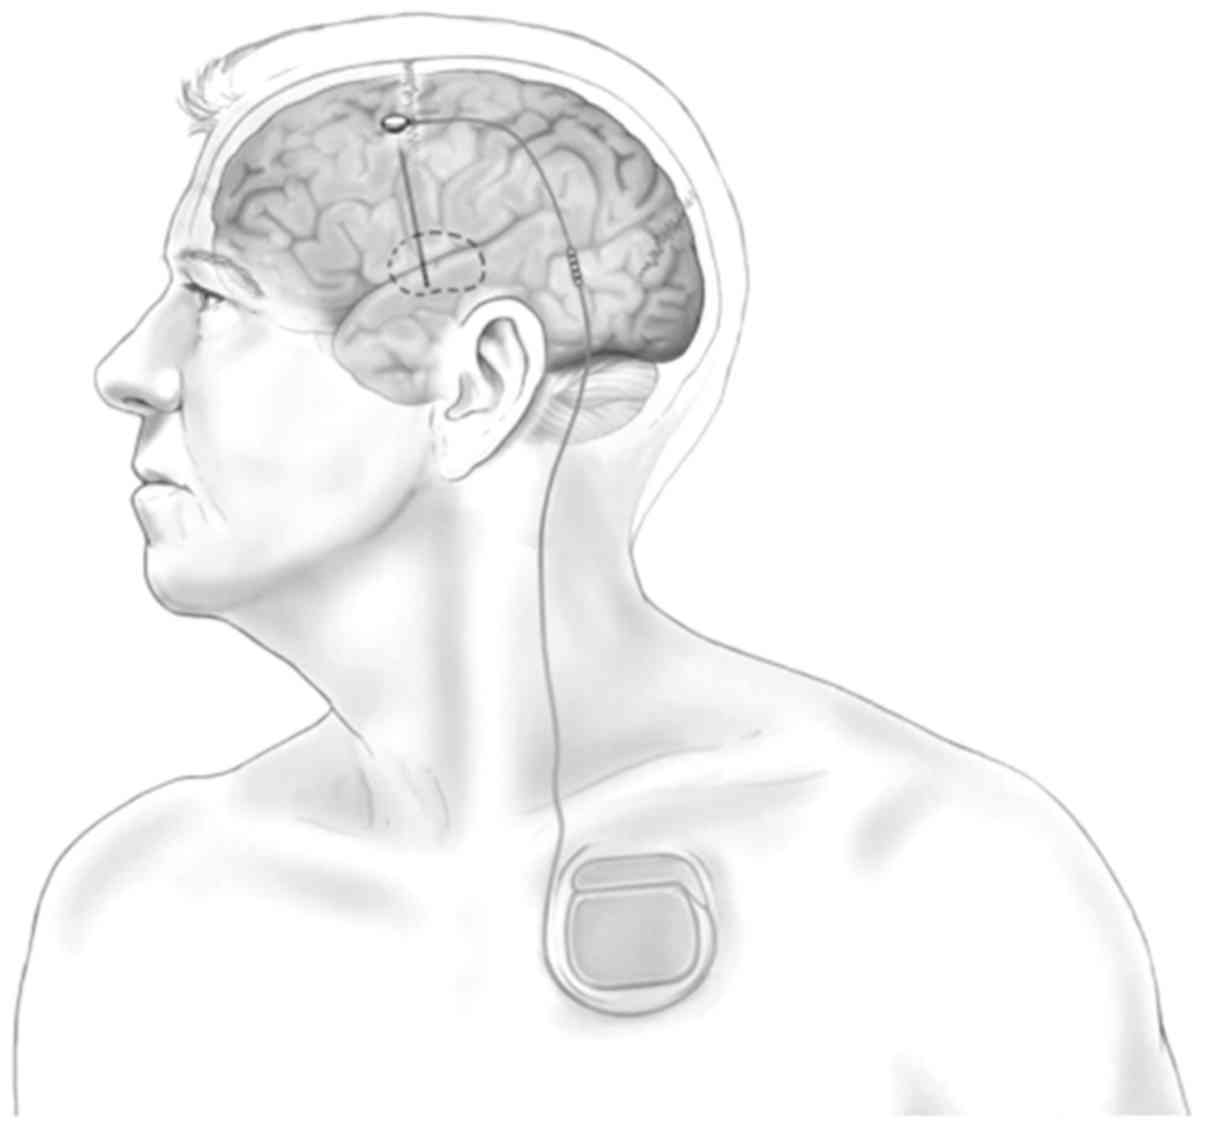 Advanced Research On Deep Brain Stimulation In Treating Mental Alternative To Drugs As Treatments Electrical Energy Pulses Tr The Stimulating Electrode Is Implanted By Stereotactic Neurosurgery And Connected A Subcutaneous Pulse Generator With Wire This Image Provided